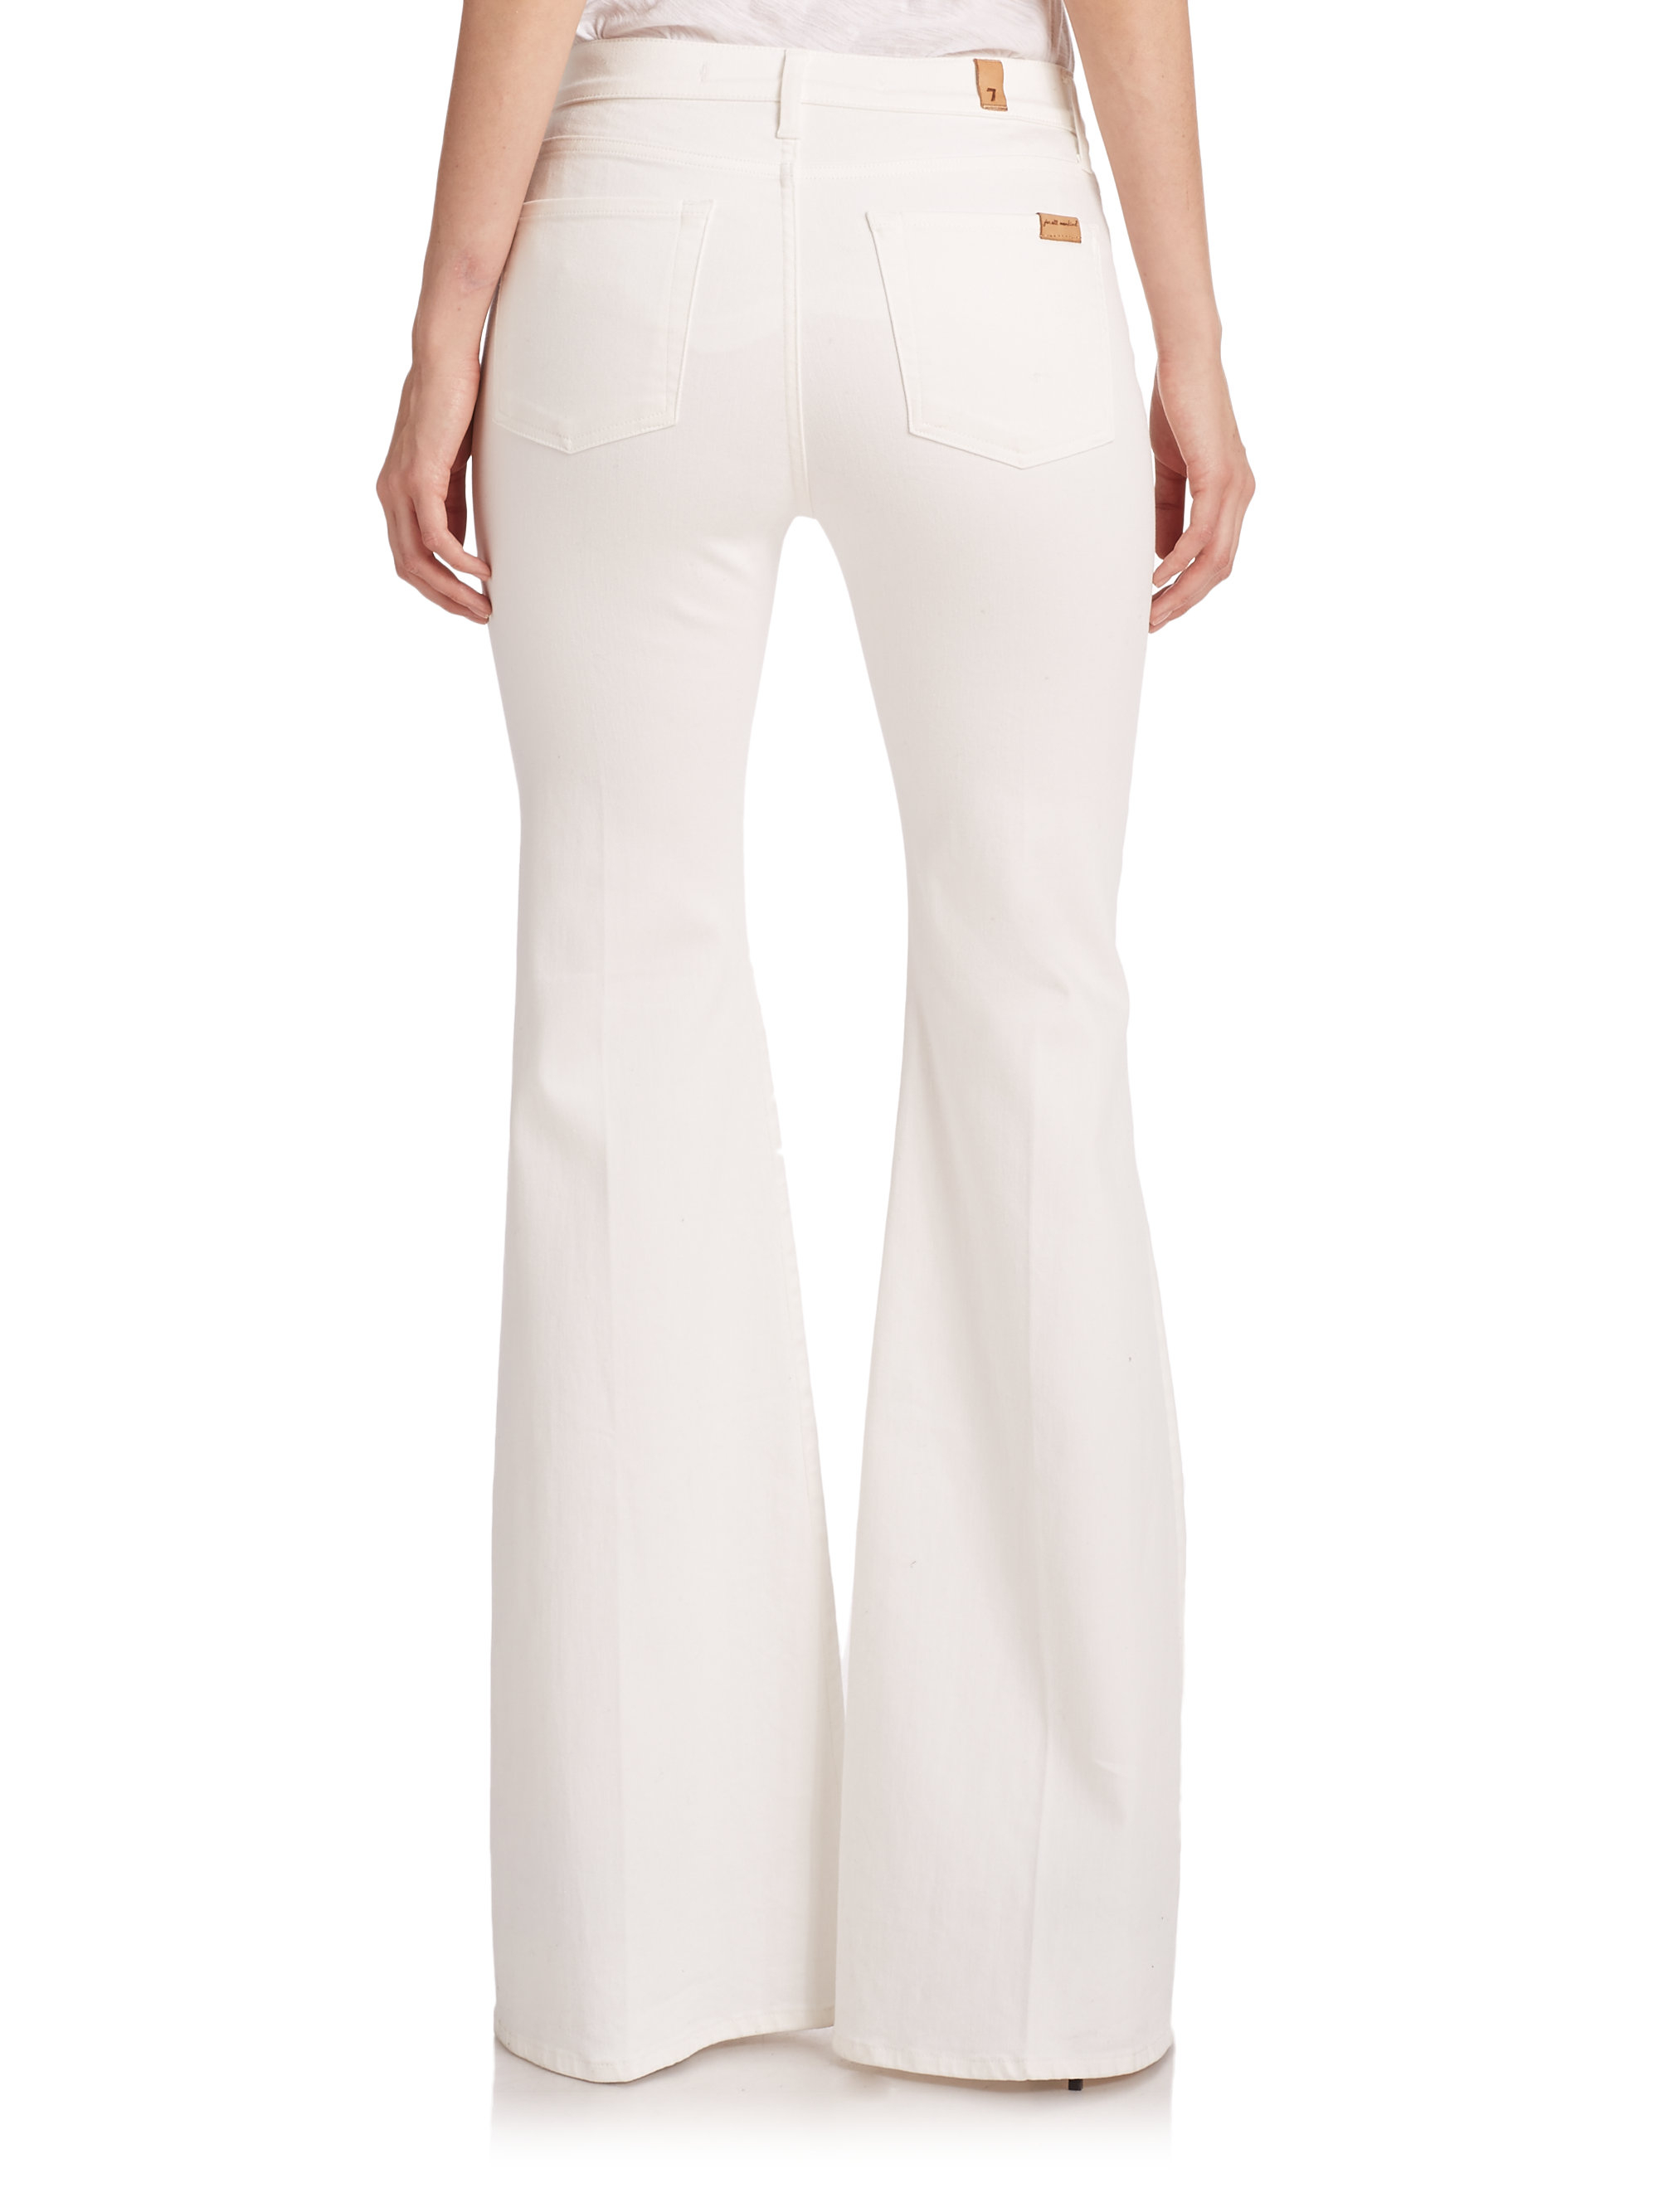 DENIM - Denim trousers Giambattista Valli DlQ01A4wSq